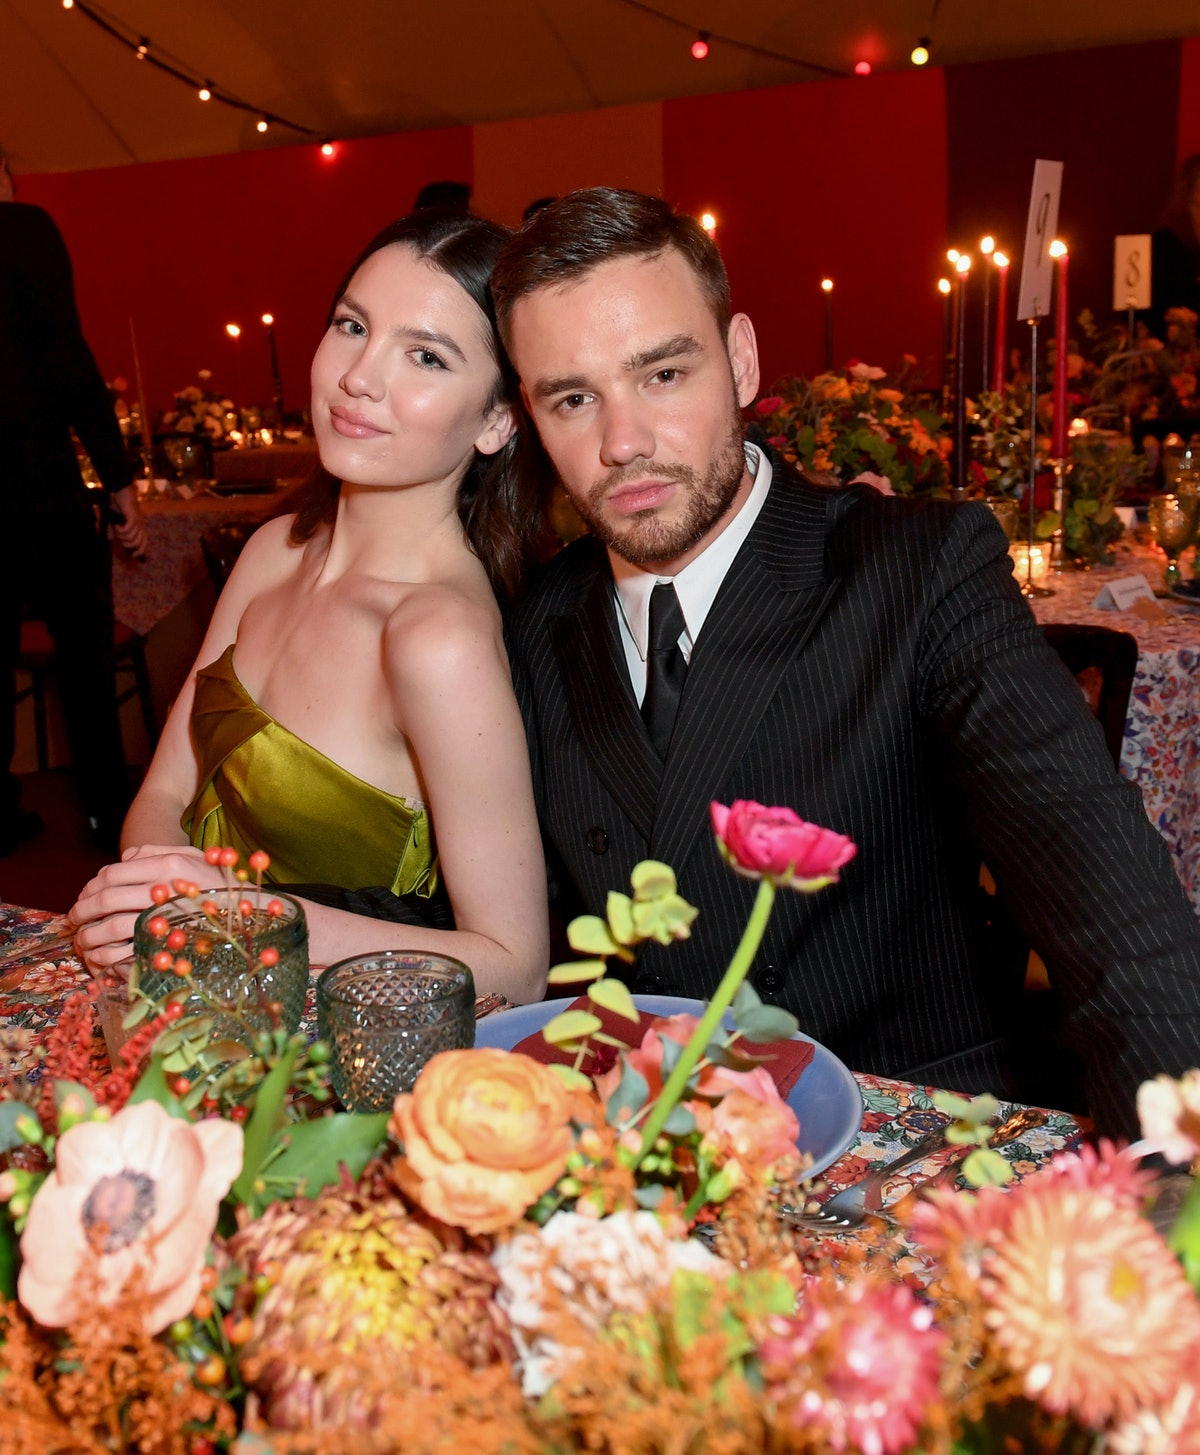 Fans think Liam Payne and Maya Henry are back together following their breakup.